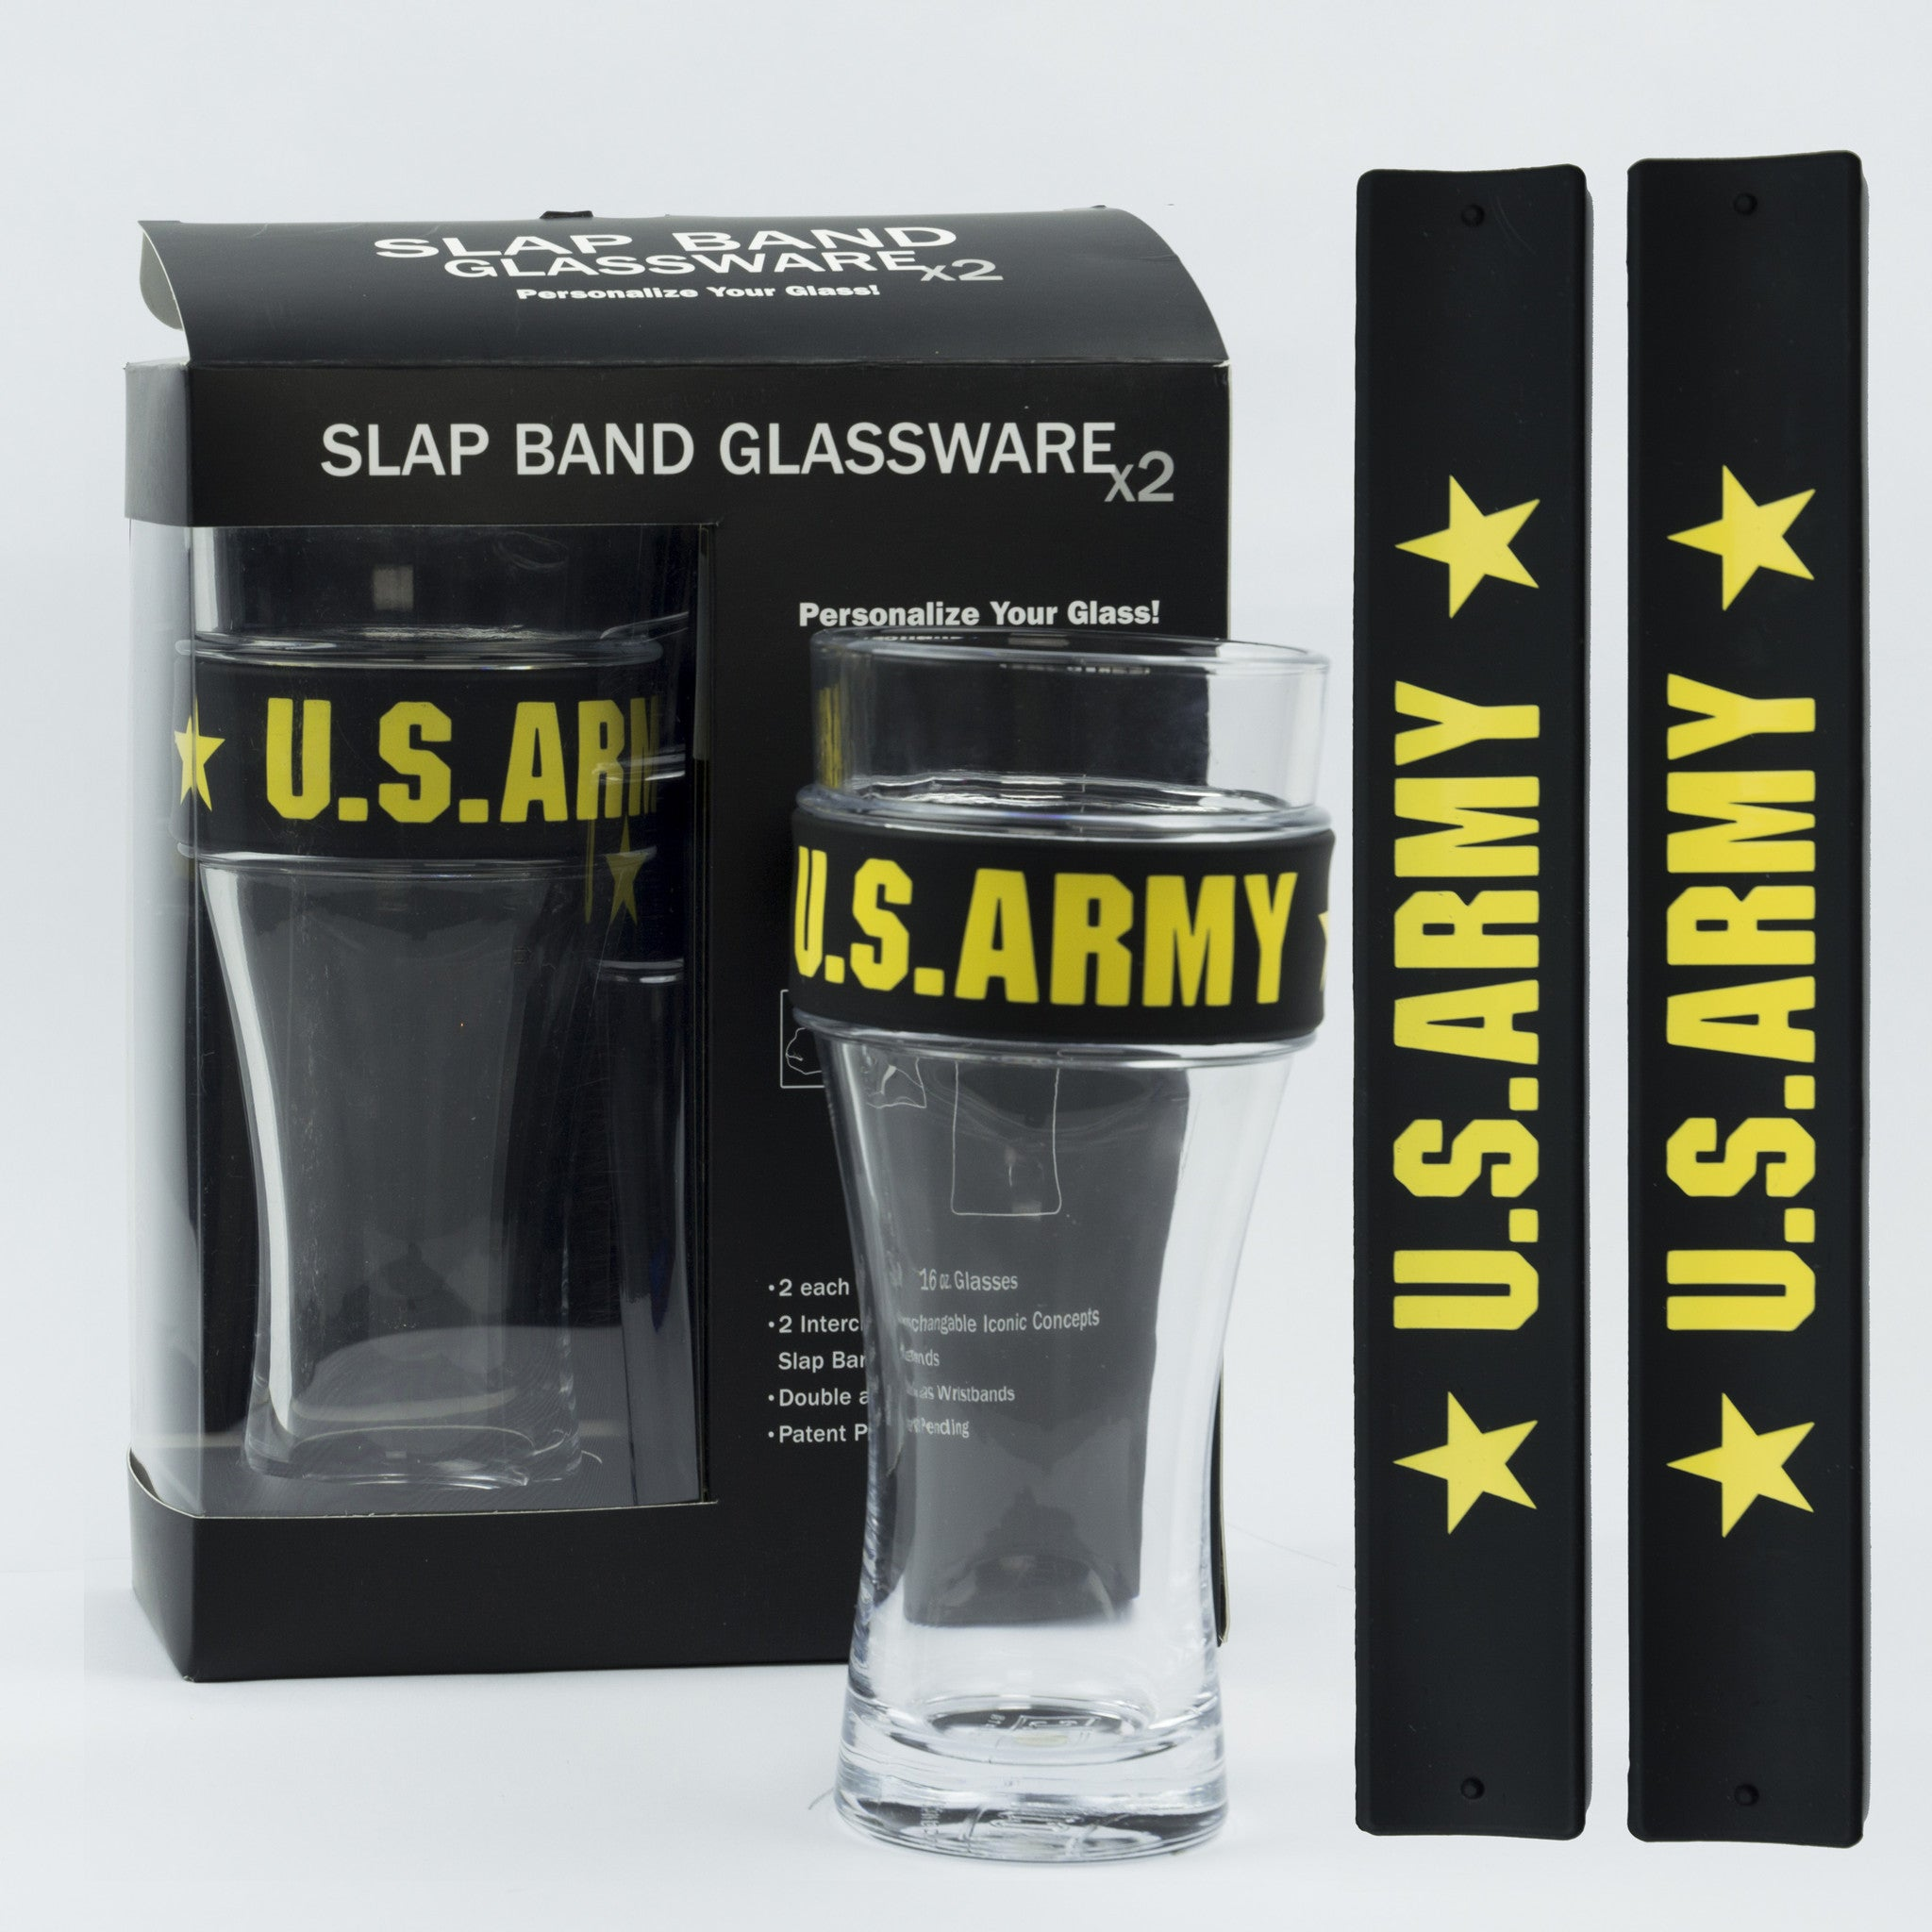 Military Slap Band Glassware - US Army